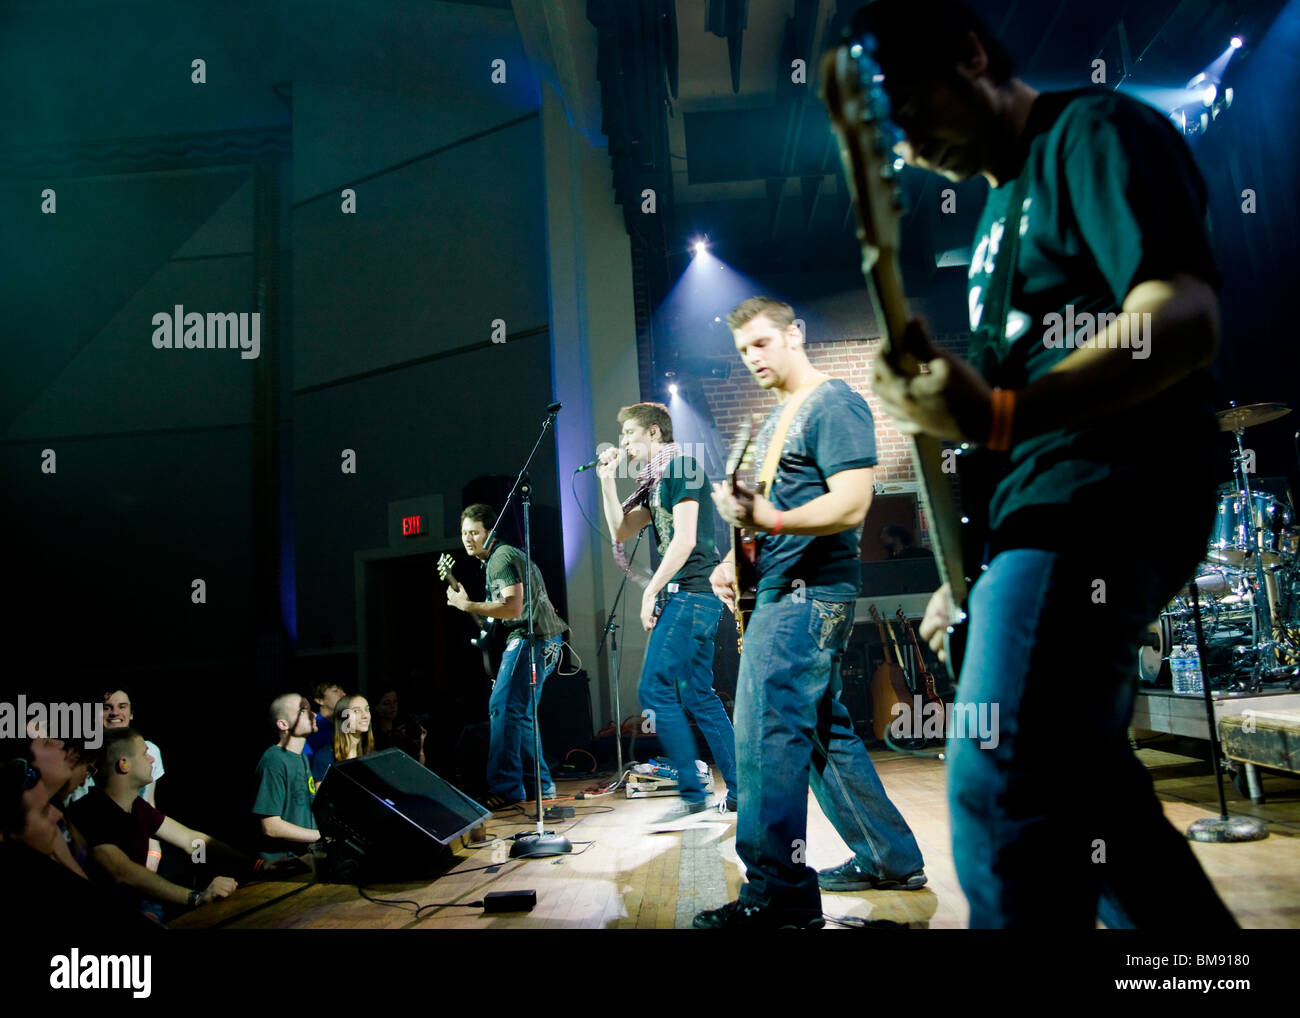 Rock band playing on stage - Stock Image